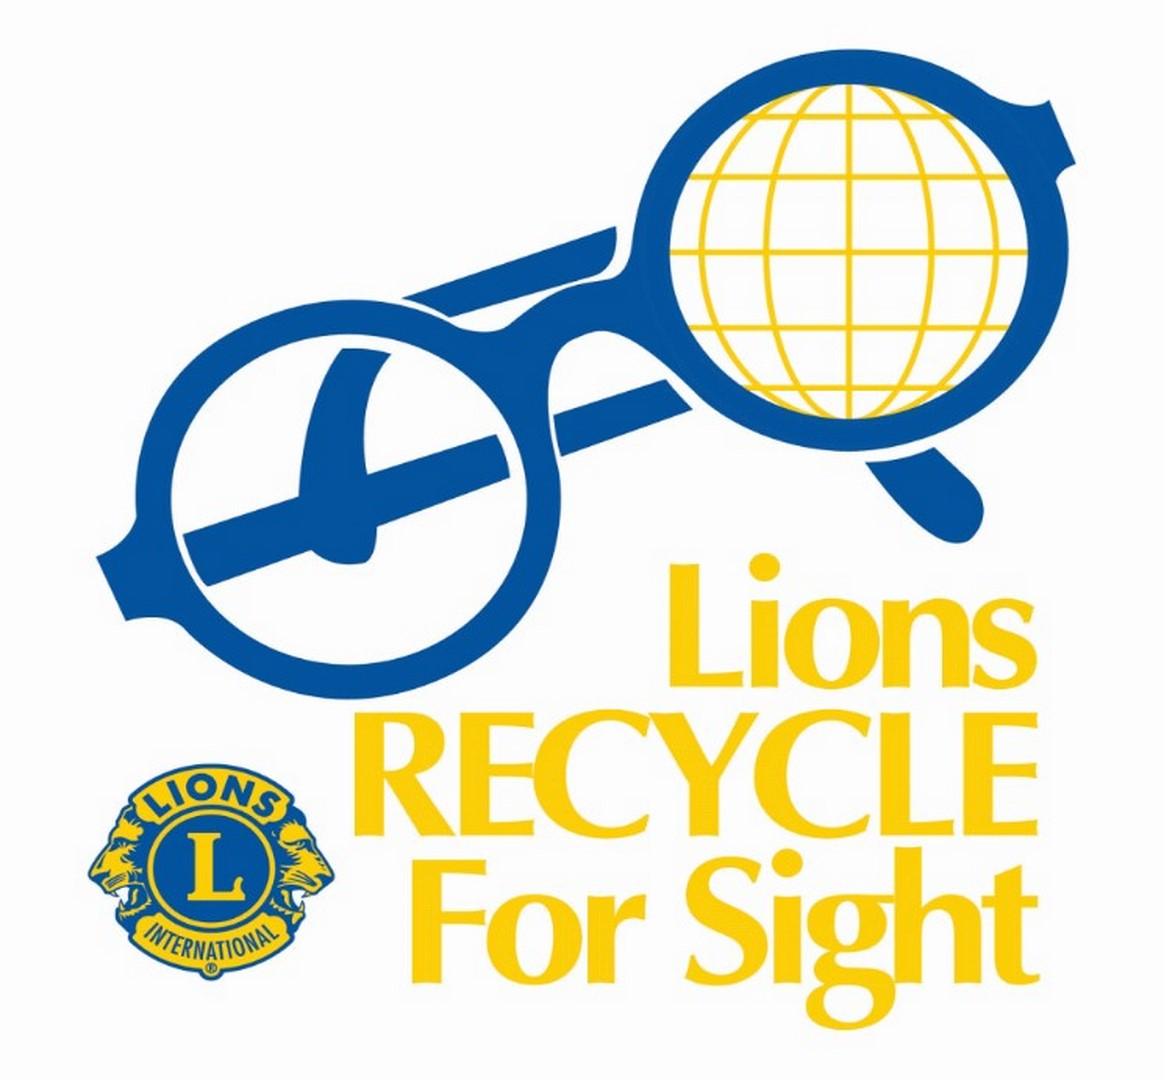 Lions Recycle for Sight Australia